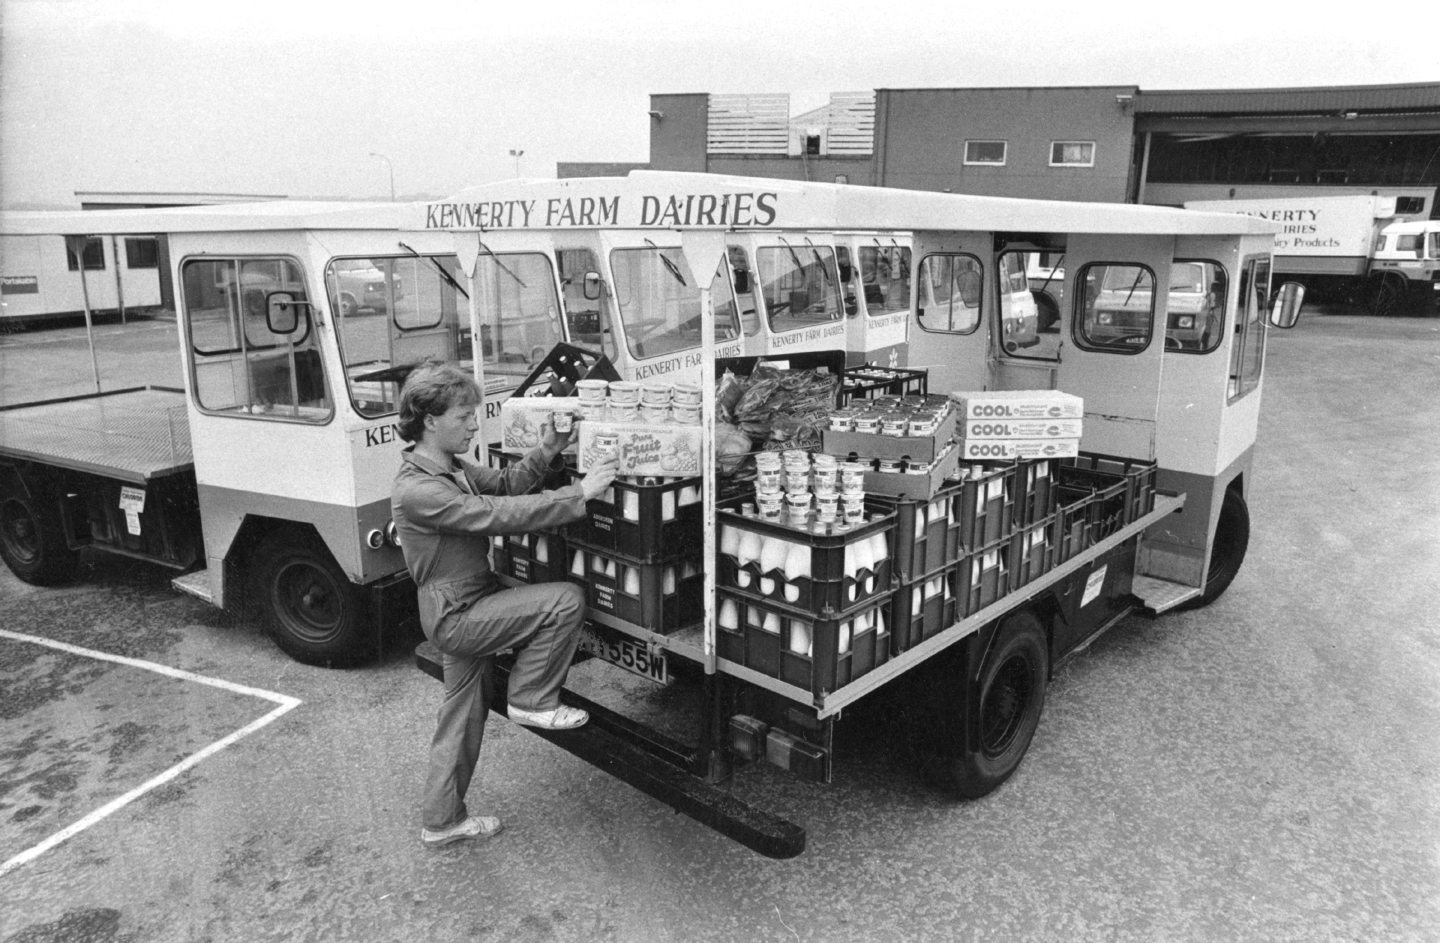 Kennerty Farm Dairies delivering milk in 1983.